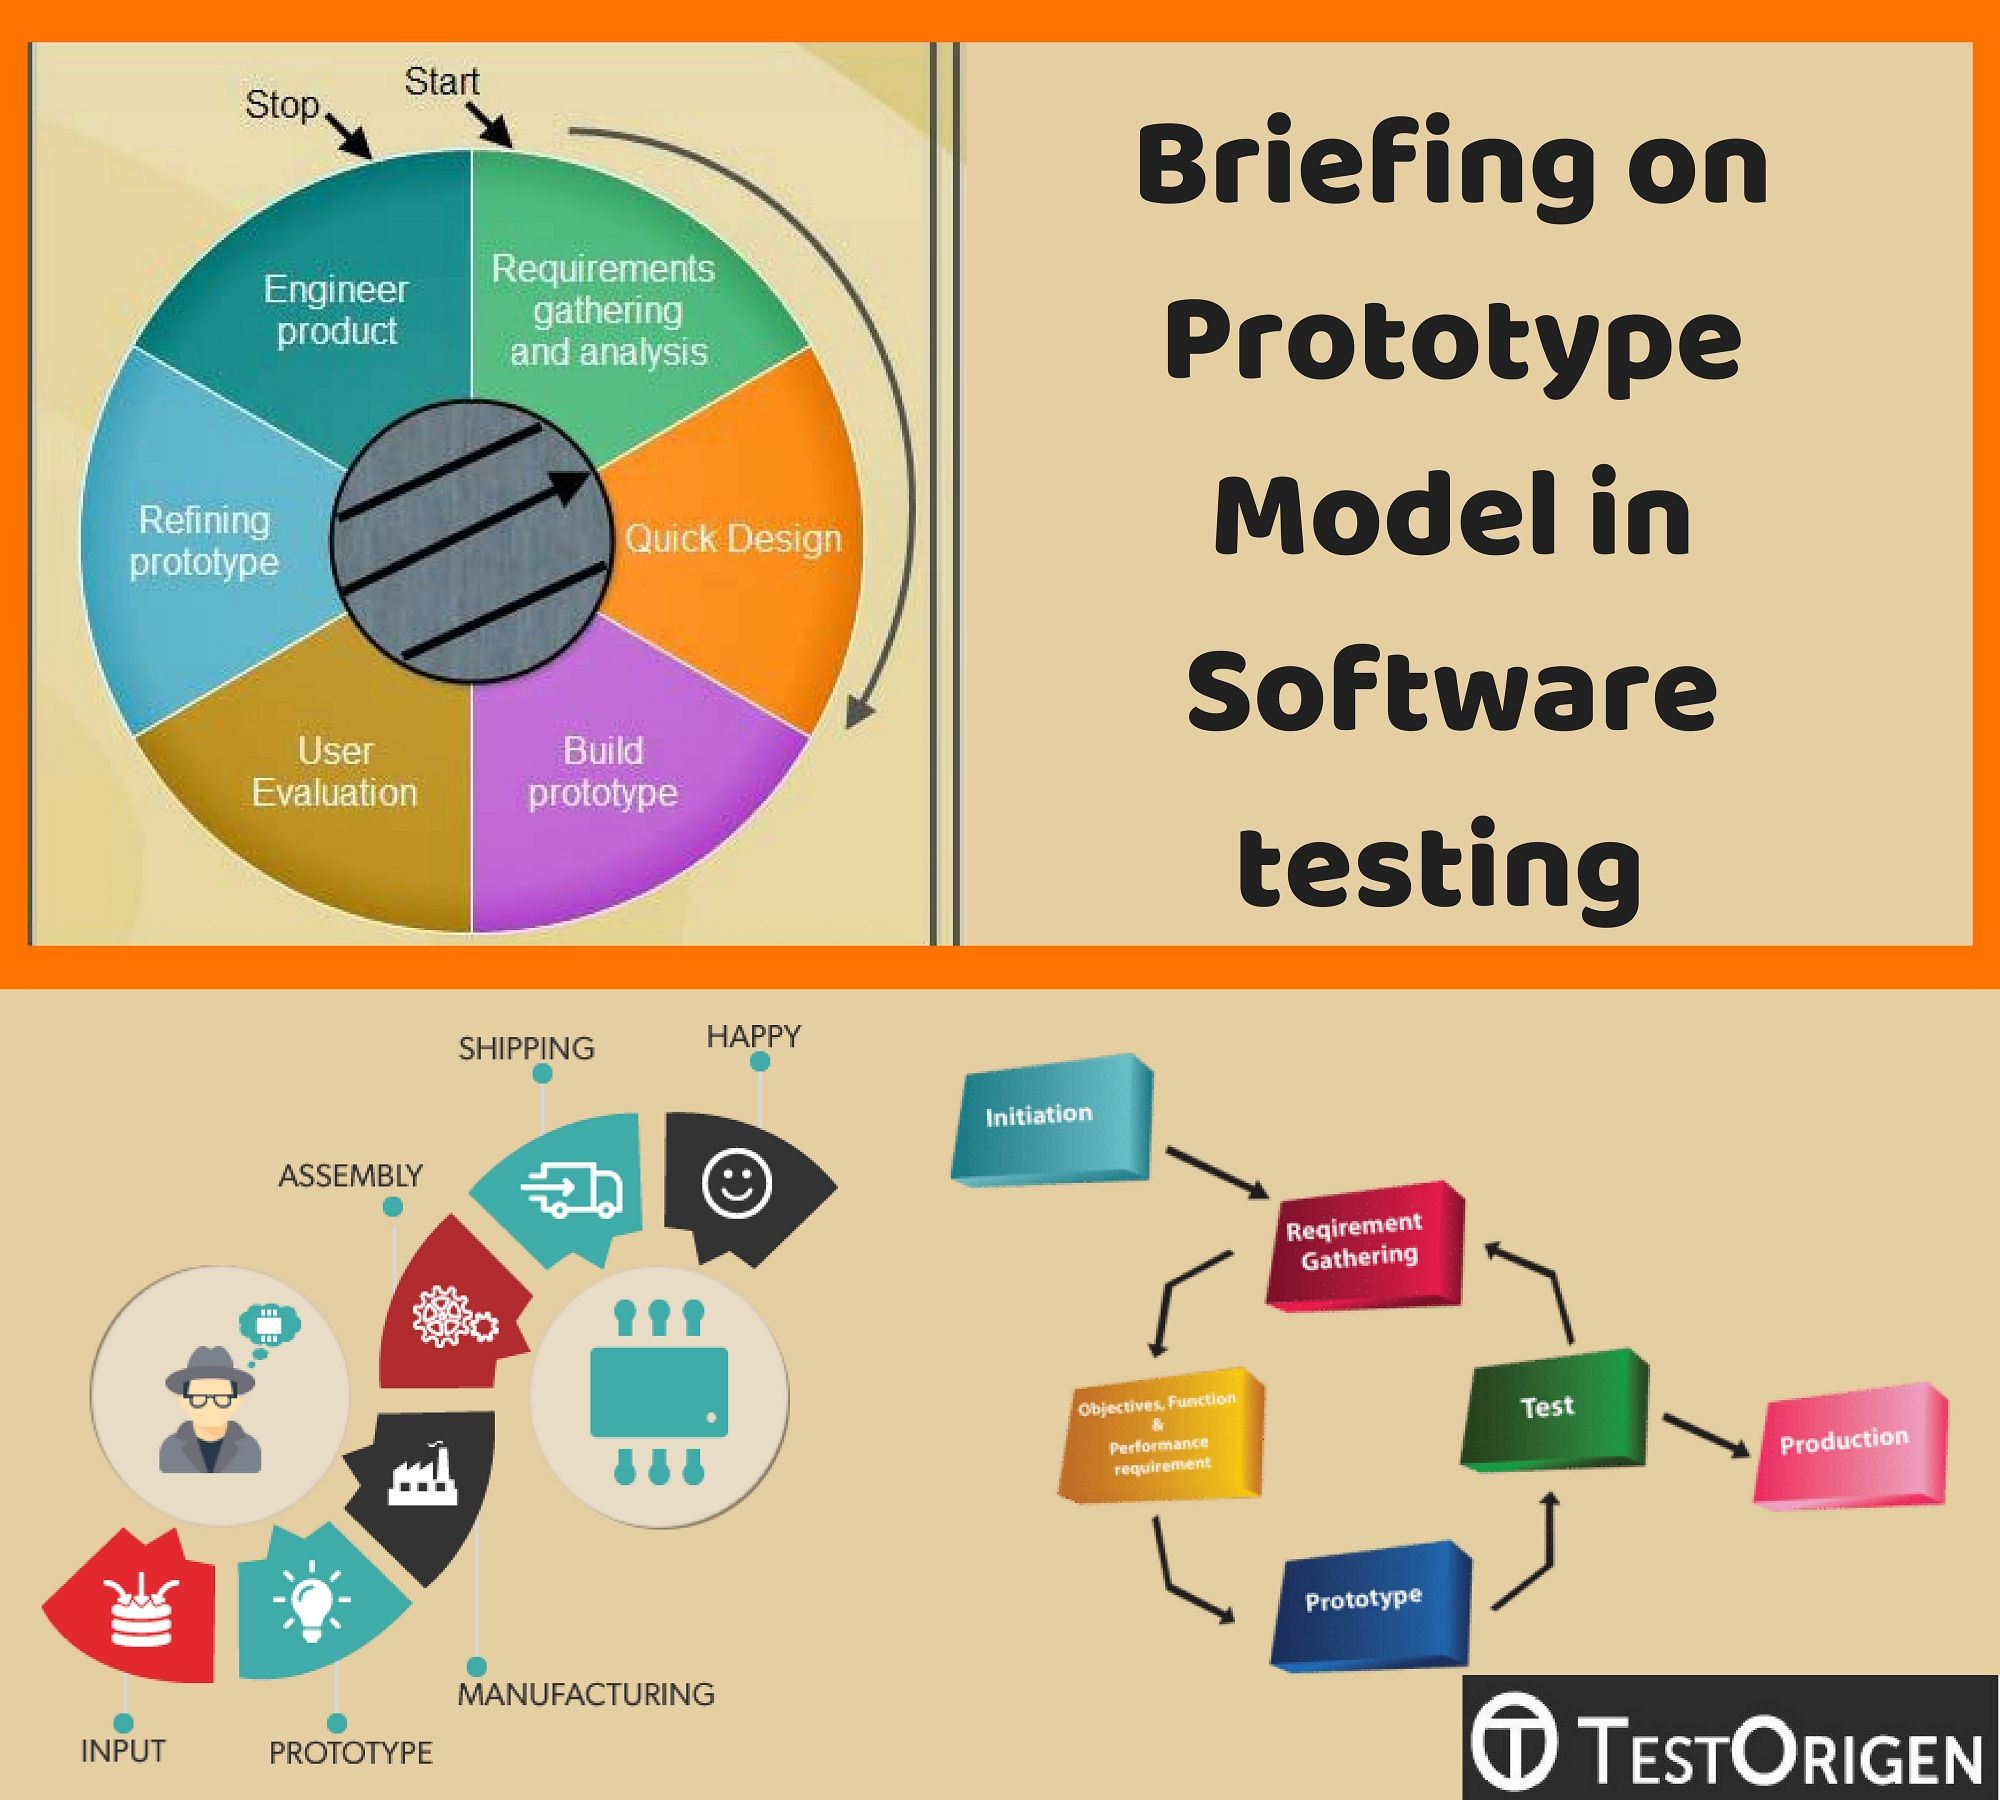 Briefing On Prototype Model In Software Testing Software Testing Software Requirements Engineering